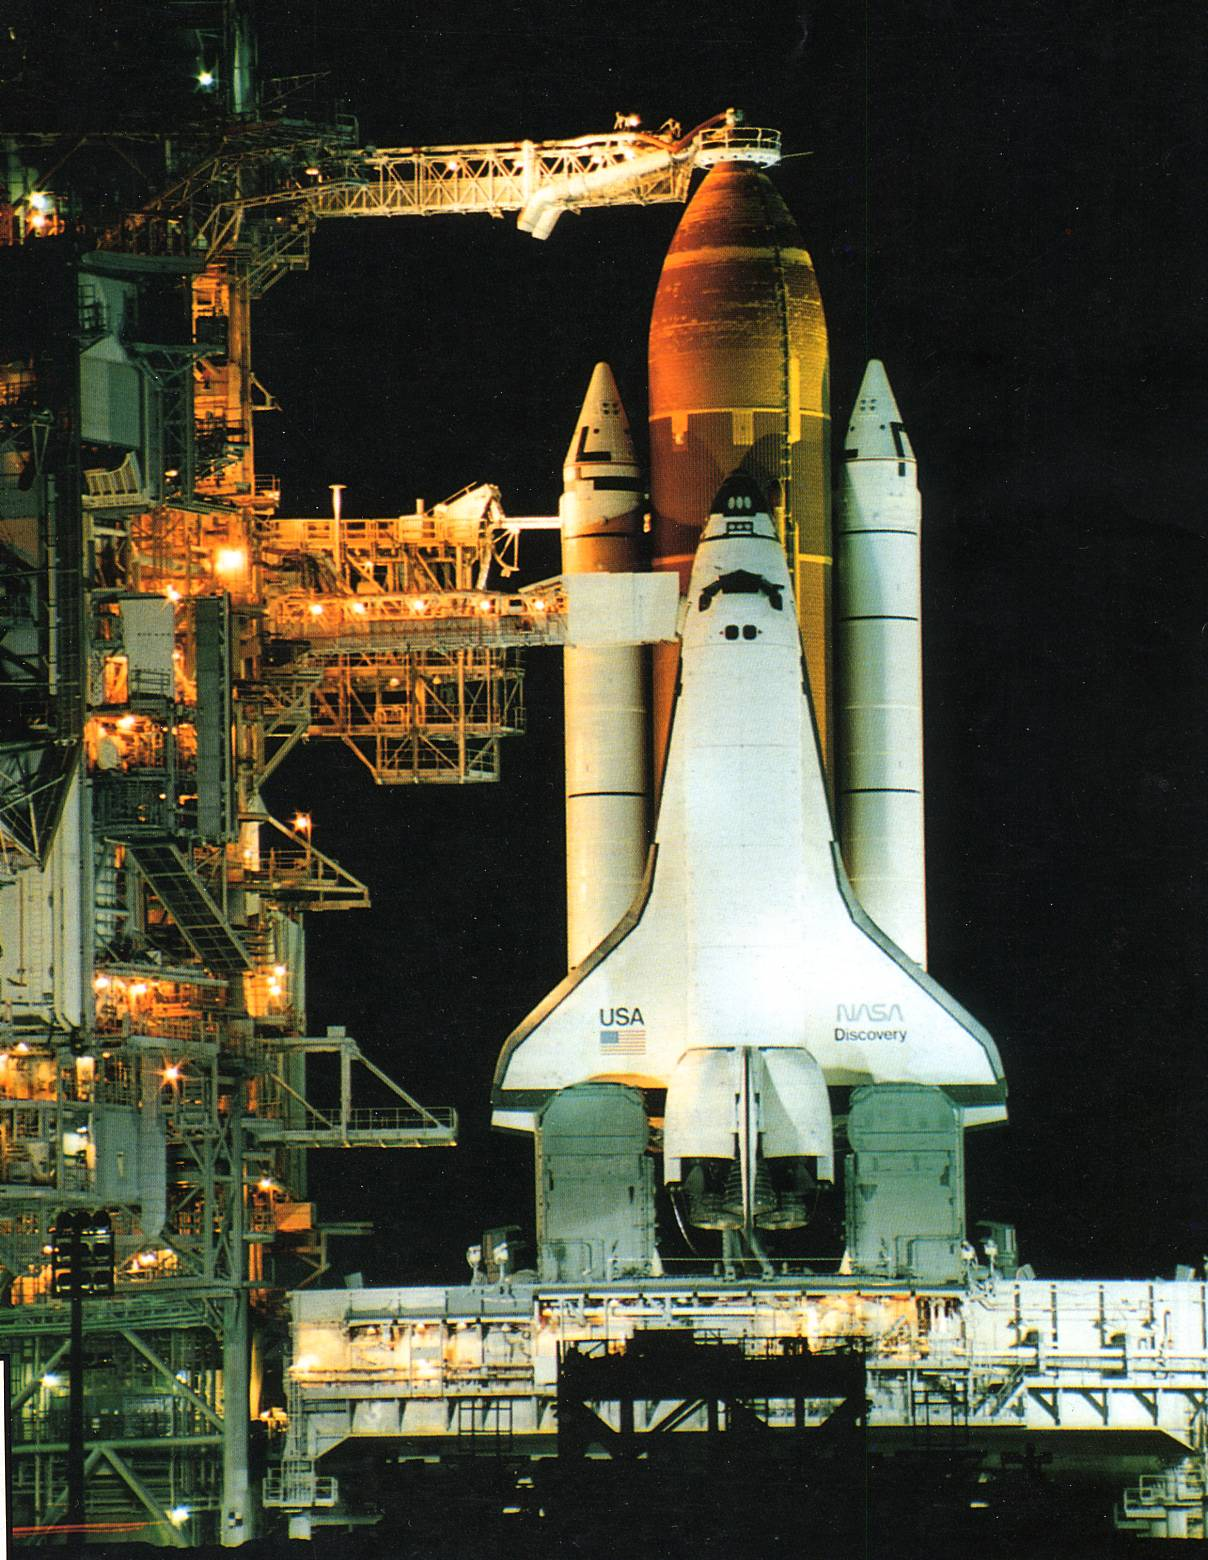 Discovery STS-51 (1993) 1993%20STS51%20pad